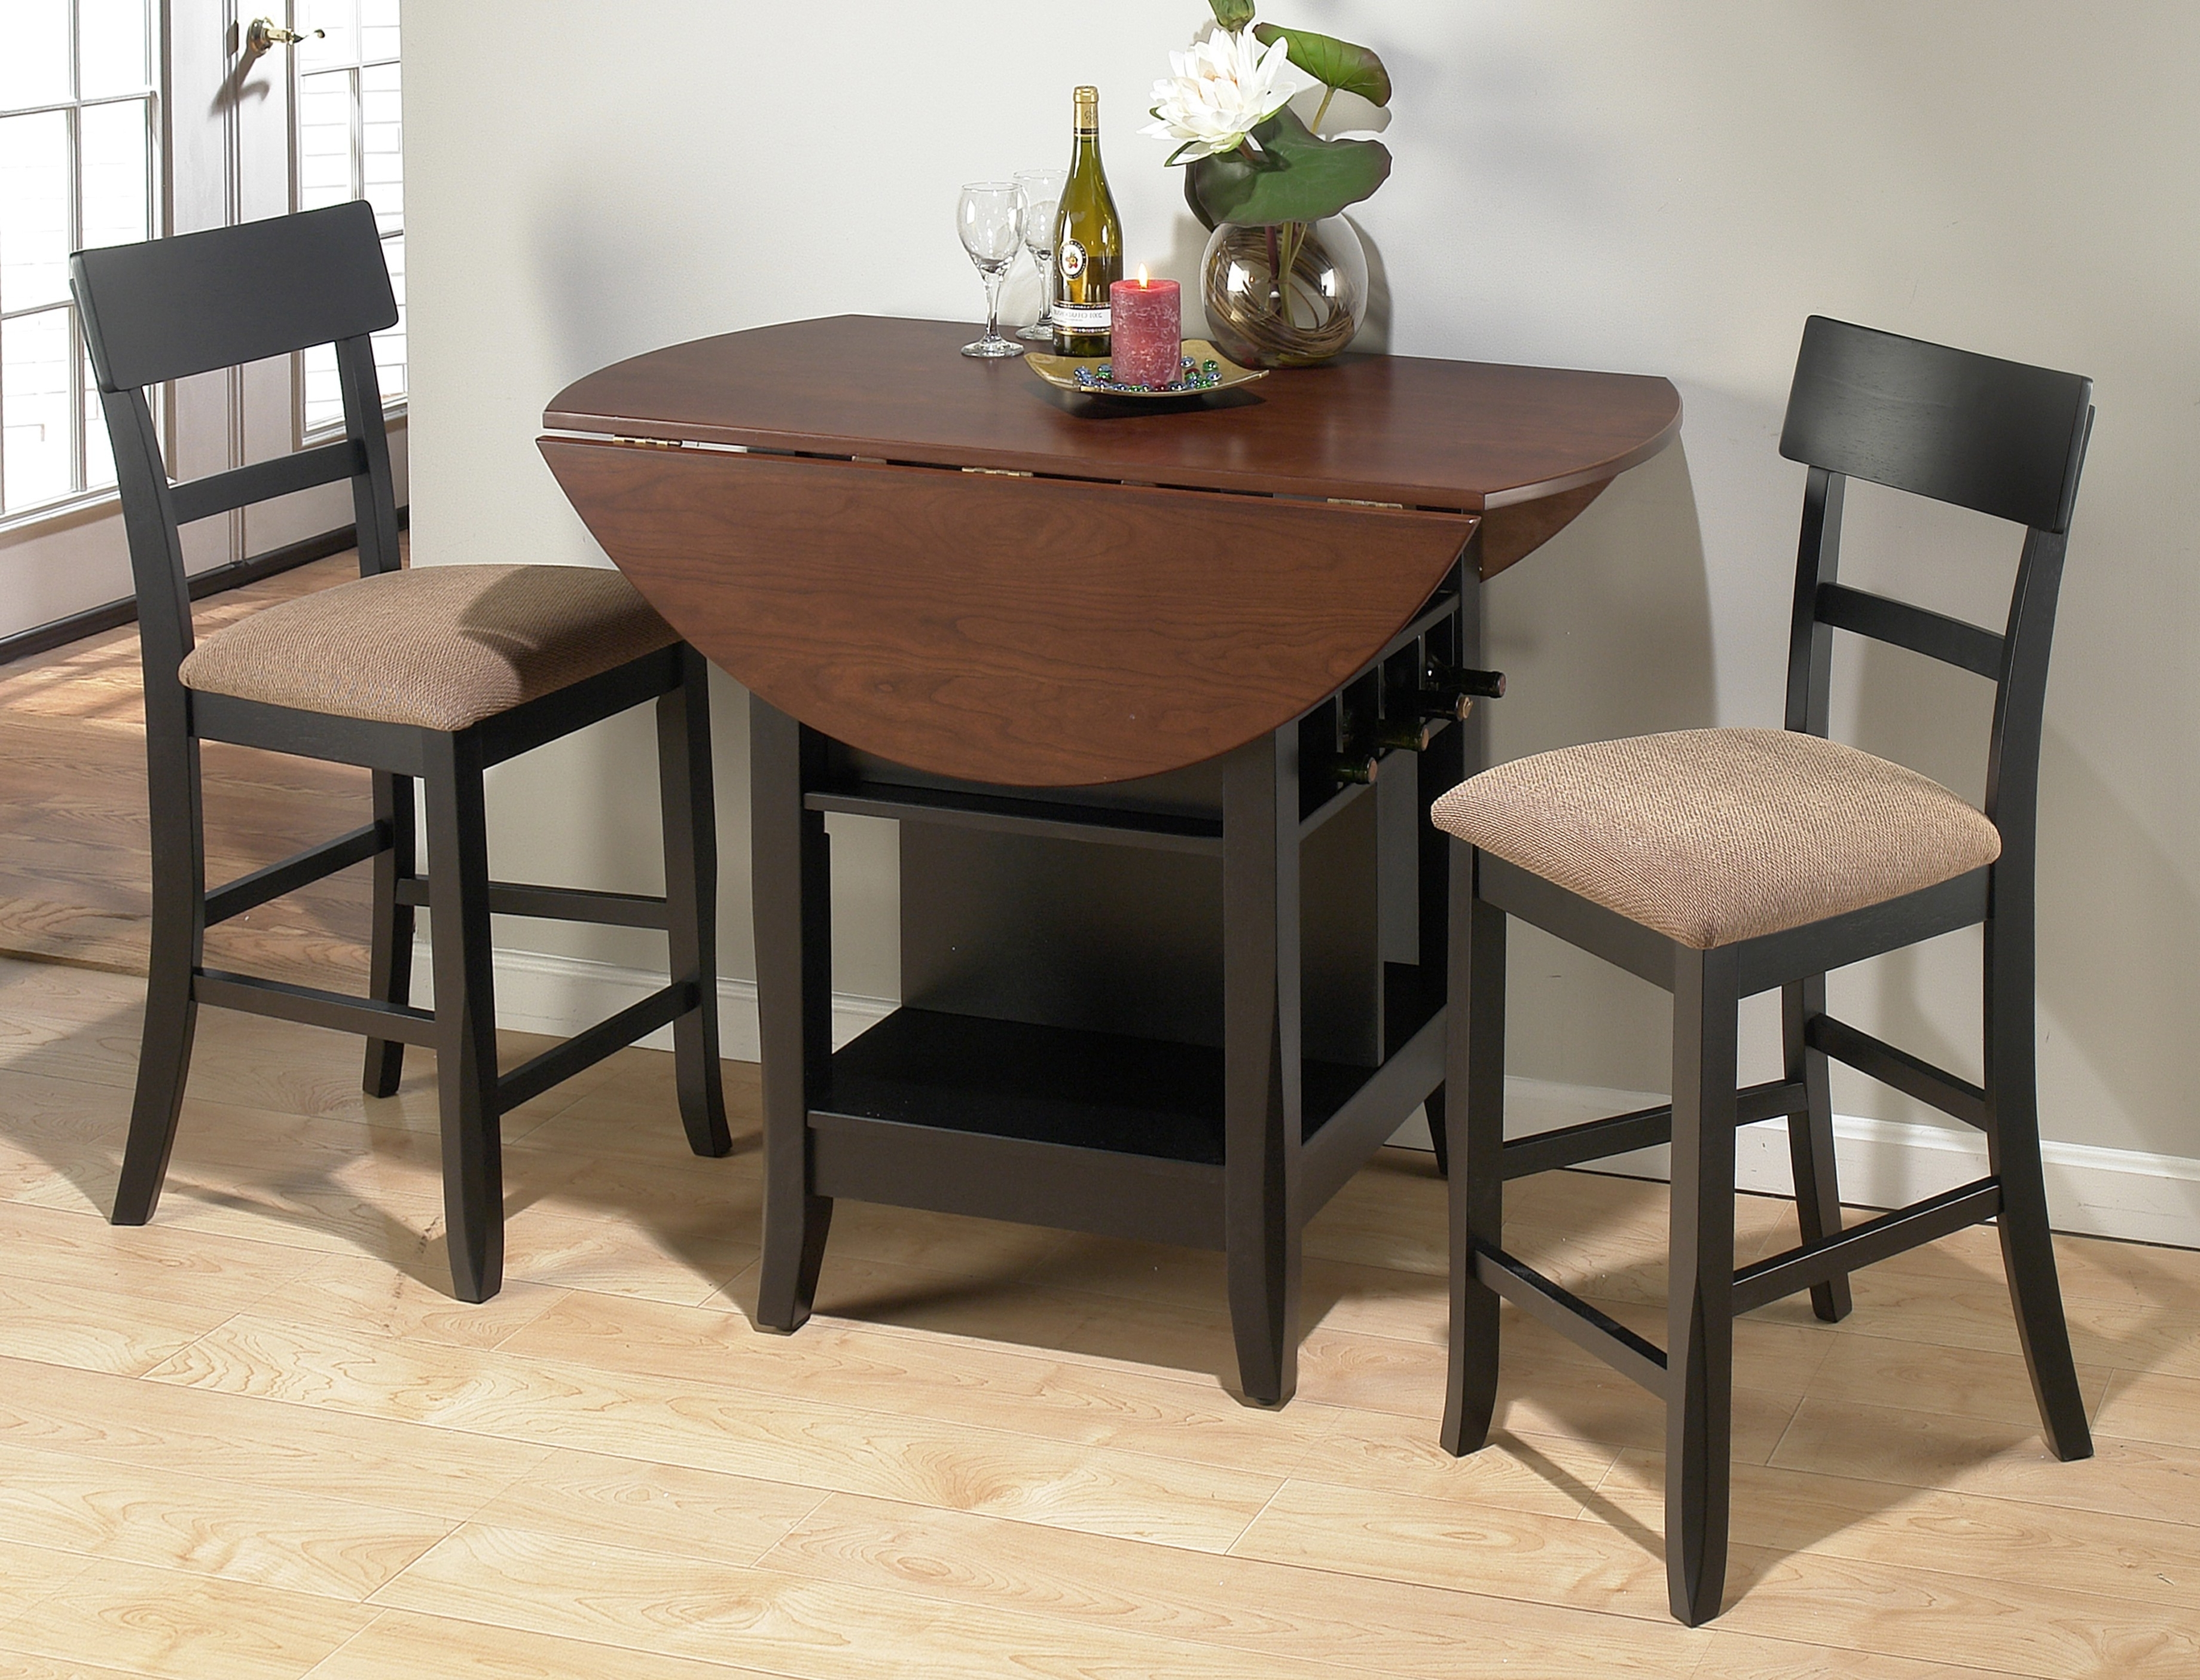 Dining Room Dining Sets For Small Rooms Compact Dining Table Chairs With Most Current Compact Dining Tables (Gallery 18 of 25)